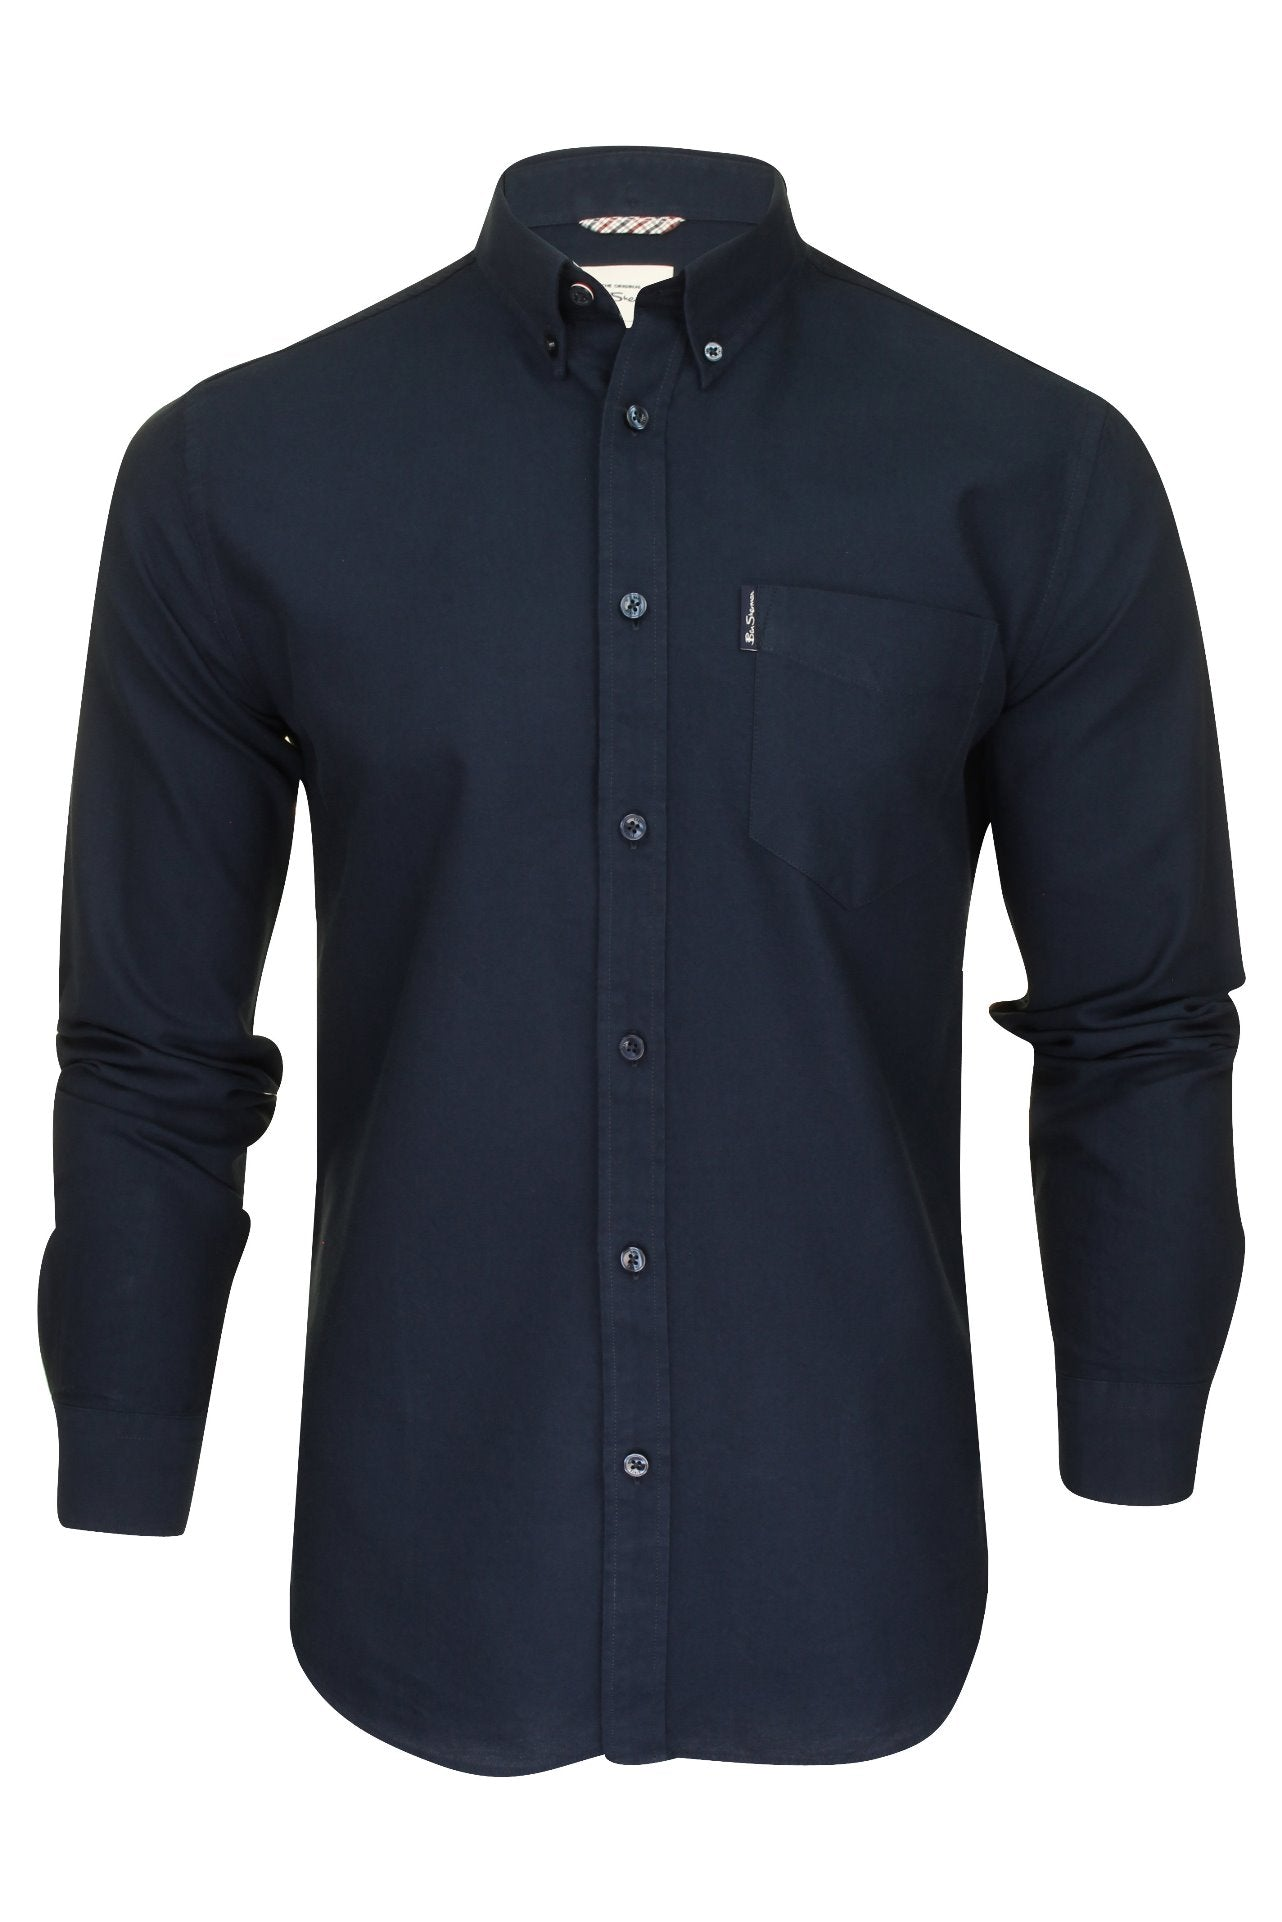 Ben Sherman Mens Oxford Shirt - Long Sleeved-2